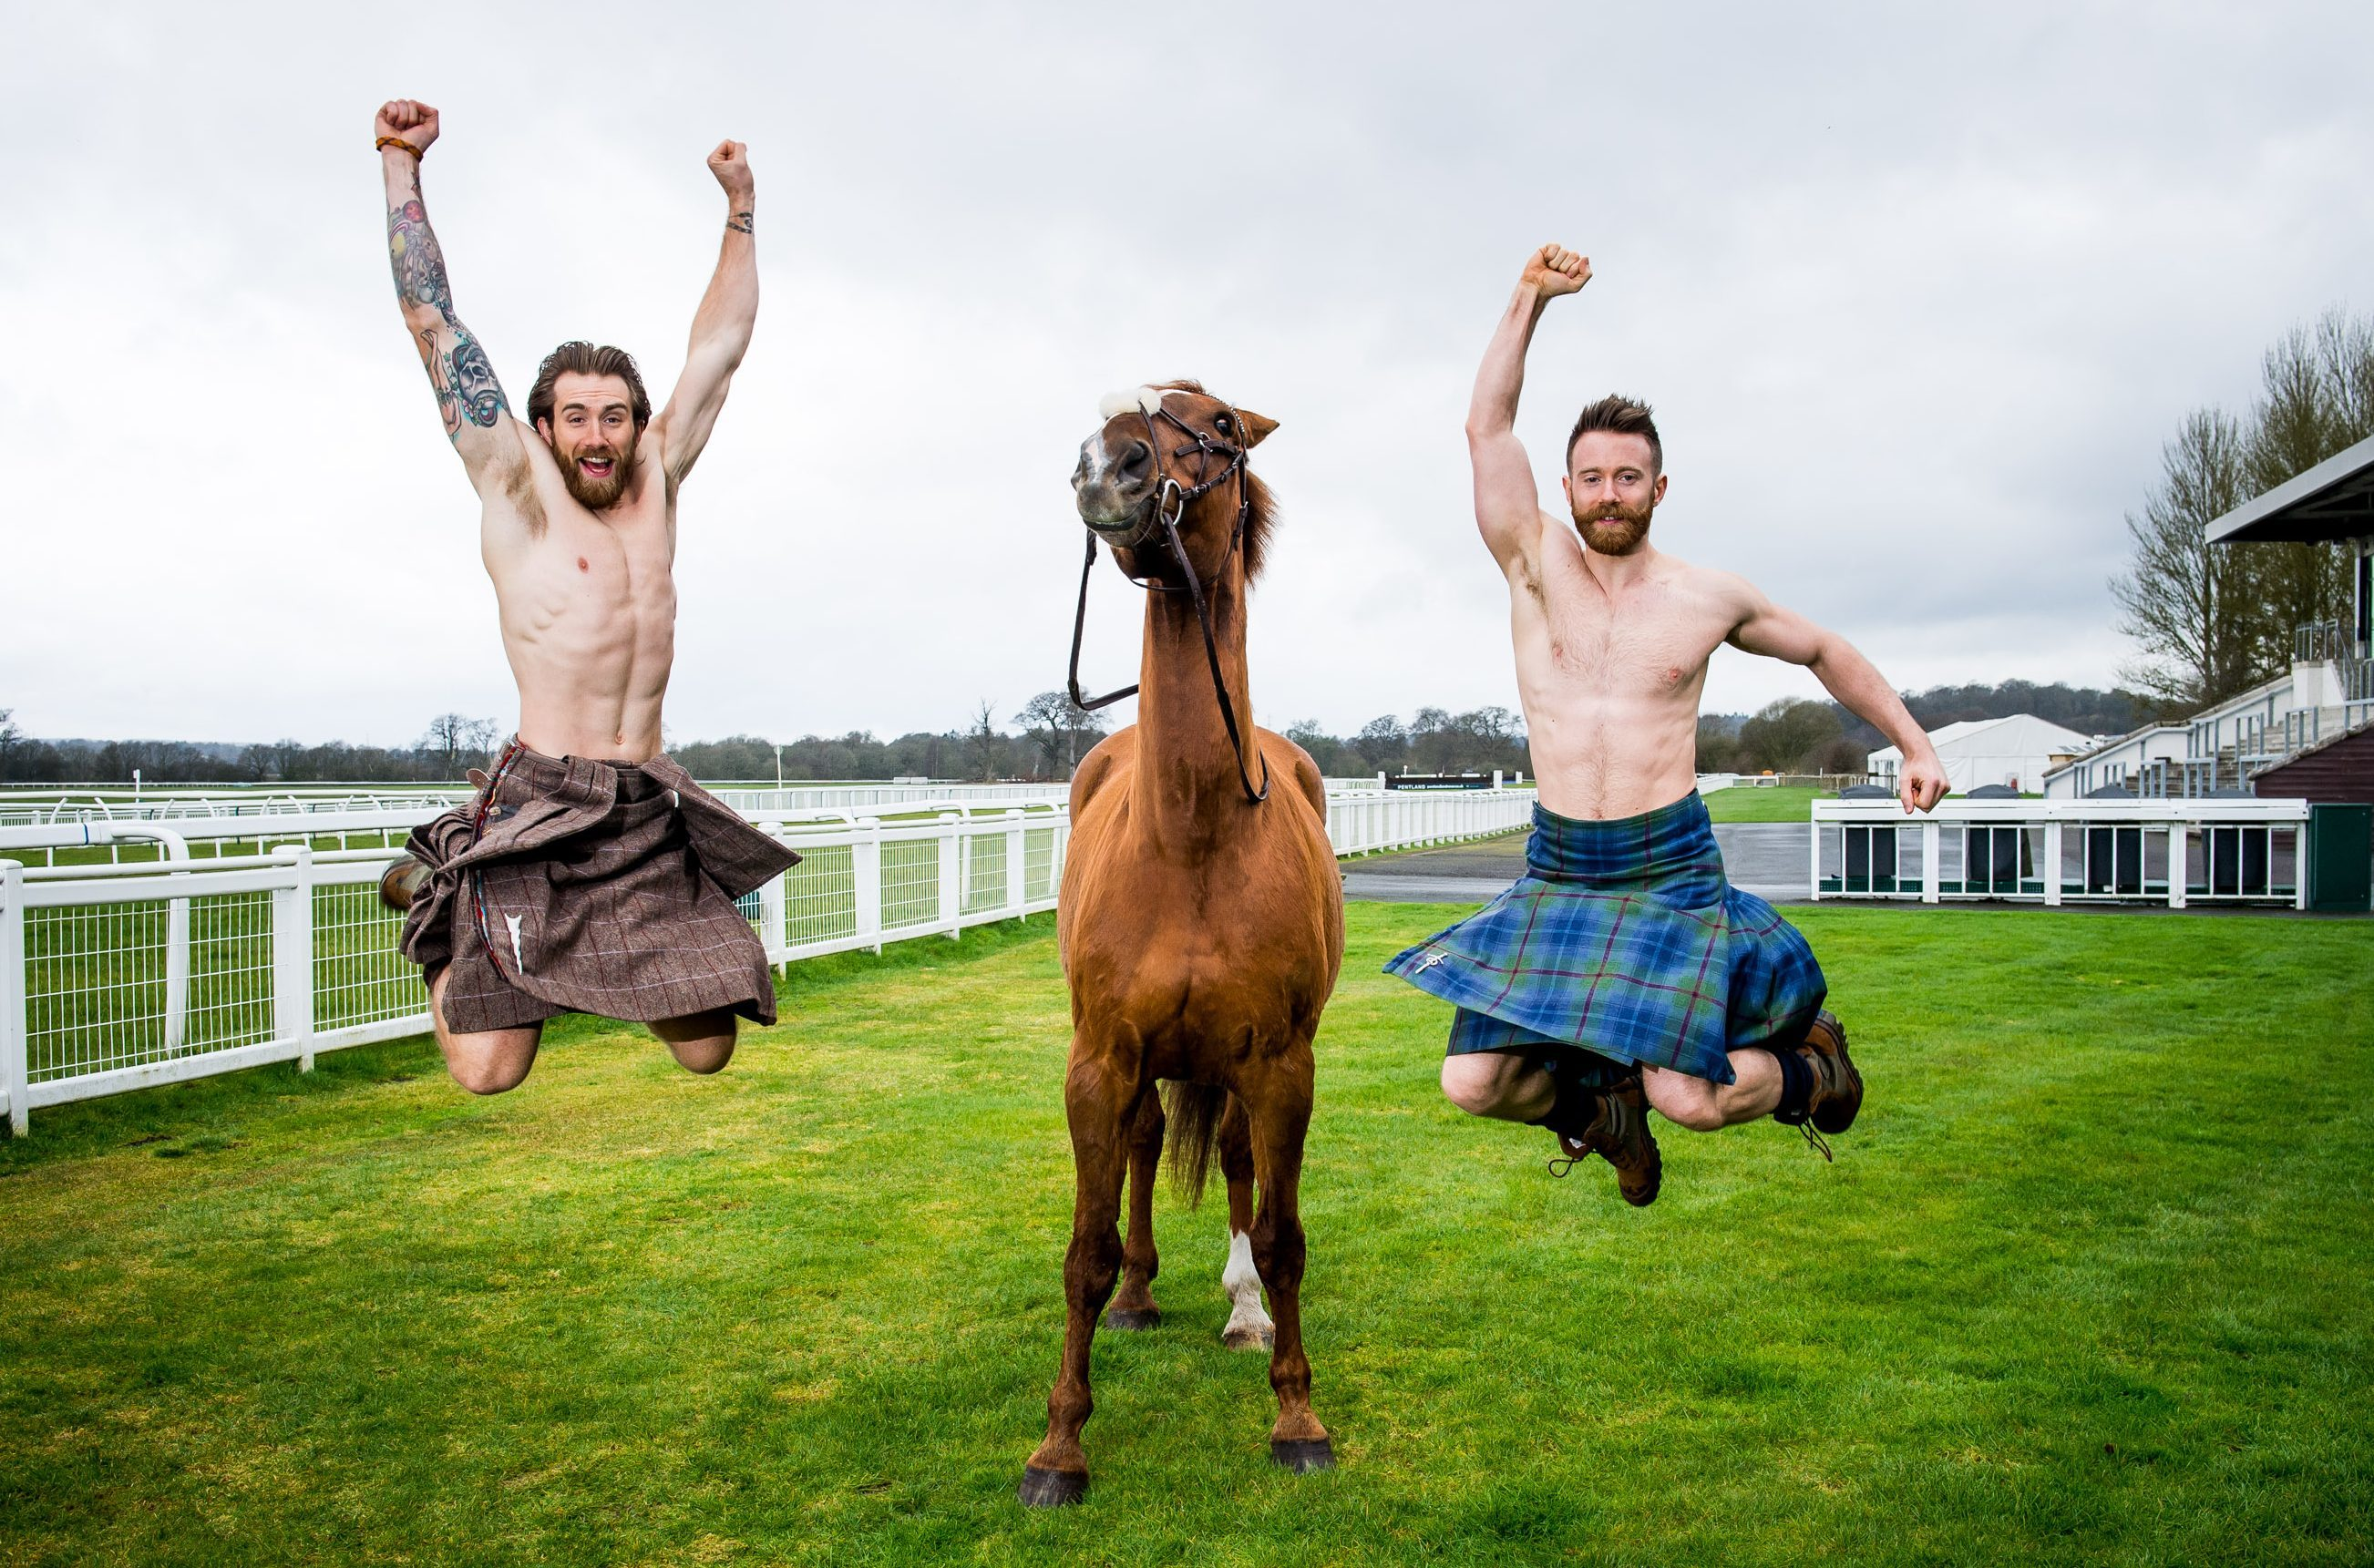 The Kilted Yogis at Perth Racecourse, Tristan Cameron Harper, left, and Finlay Thomas Wilson.   photographer Fraser Band     07984 163 256 www.fraserband.co.uk